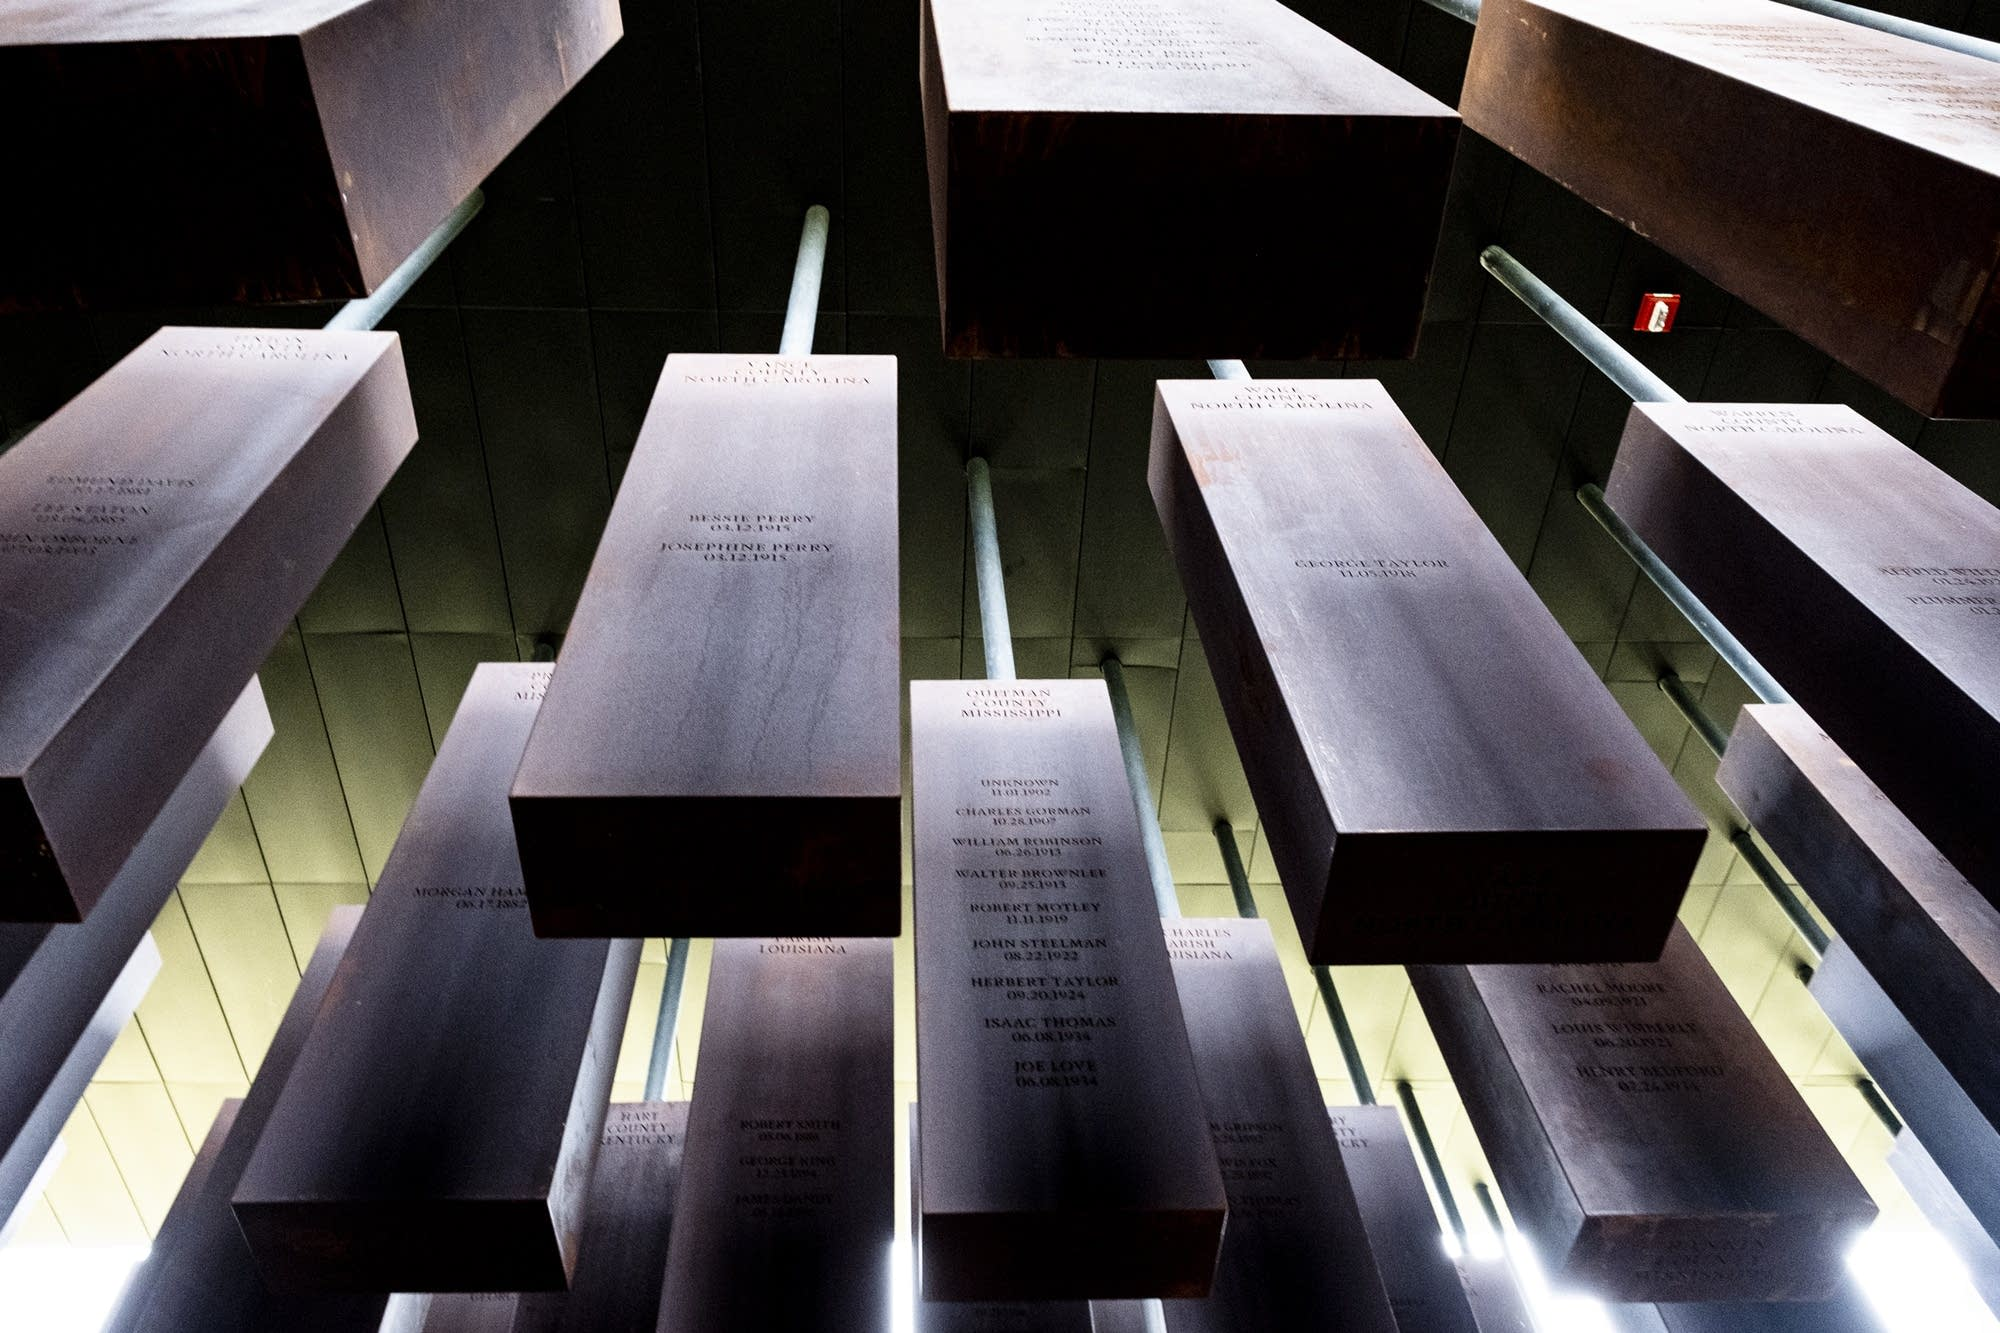 Pillars from three southern states hang inside the memorial.